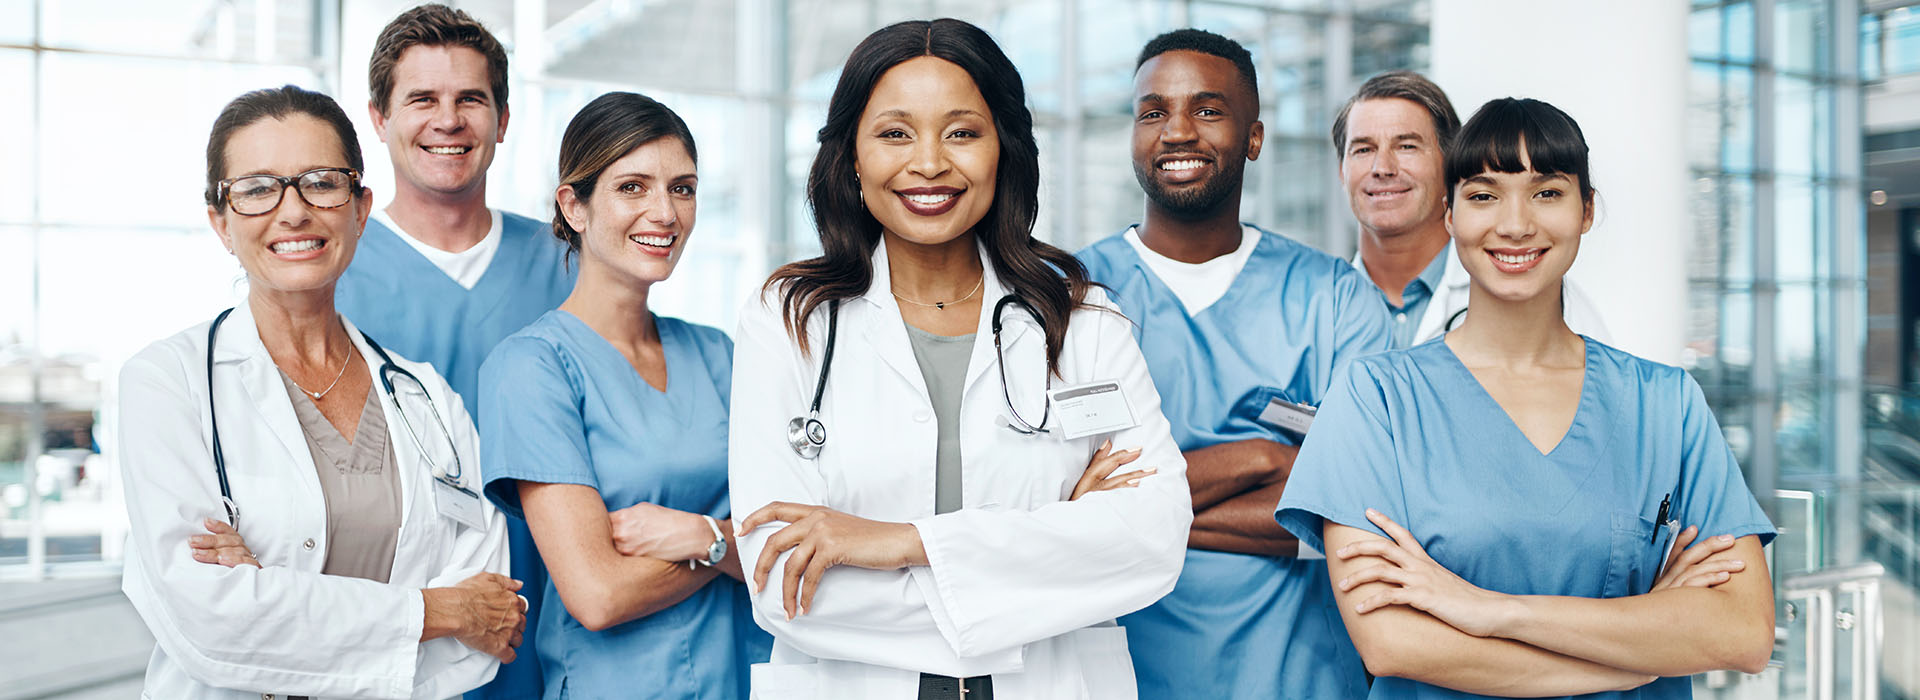 diverse healthcare team